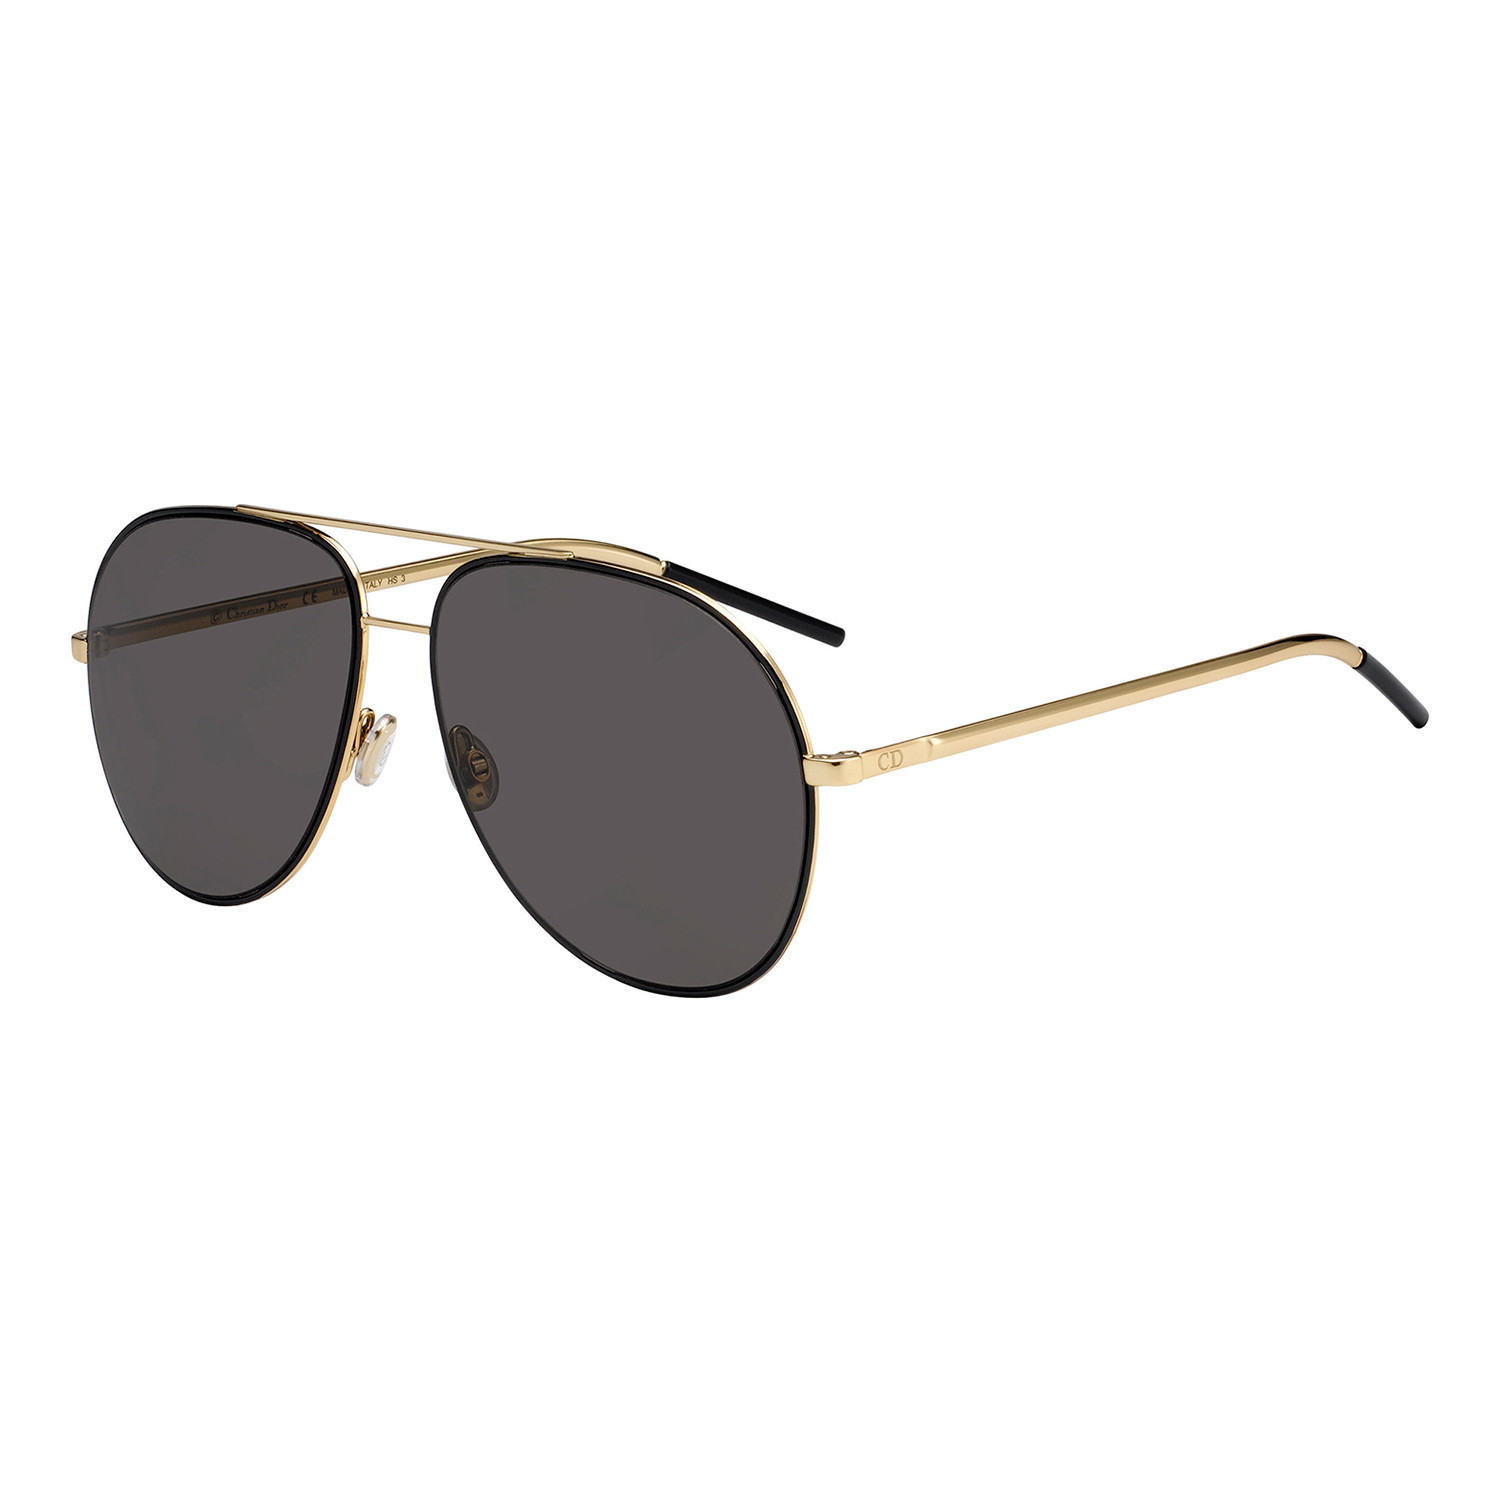 ff9d965cf4 1efecf56e7556e69d8509db048da59b4 medium. Dior ASTRAL S Sunglasses ...